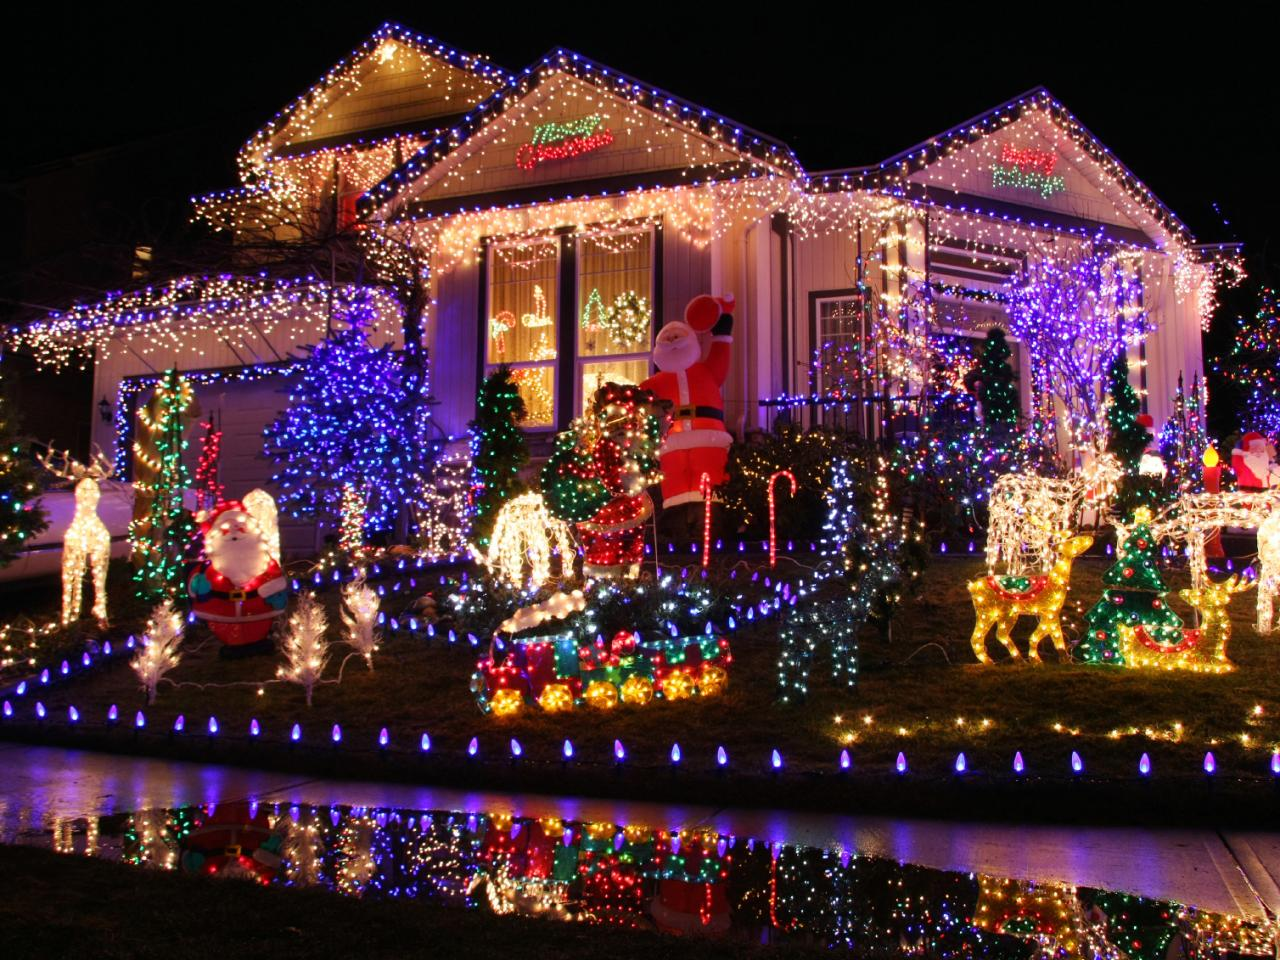 Buyers guide for the best outdoor christmas lighting diy for Christmas lights and decorations